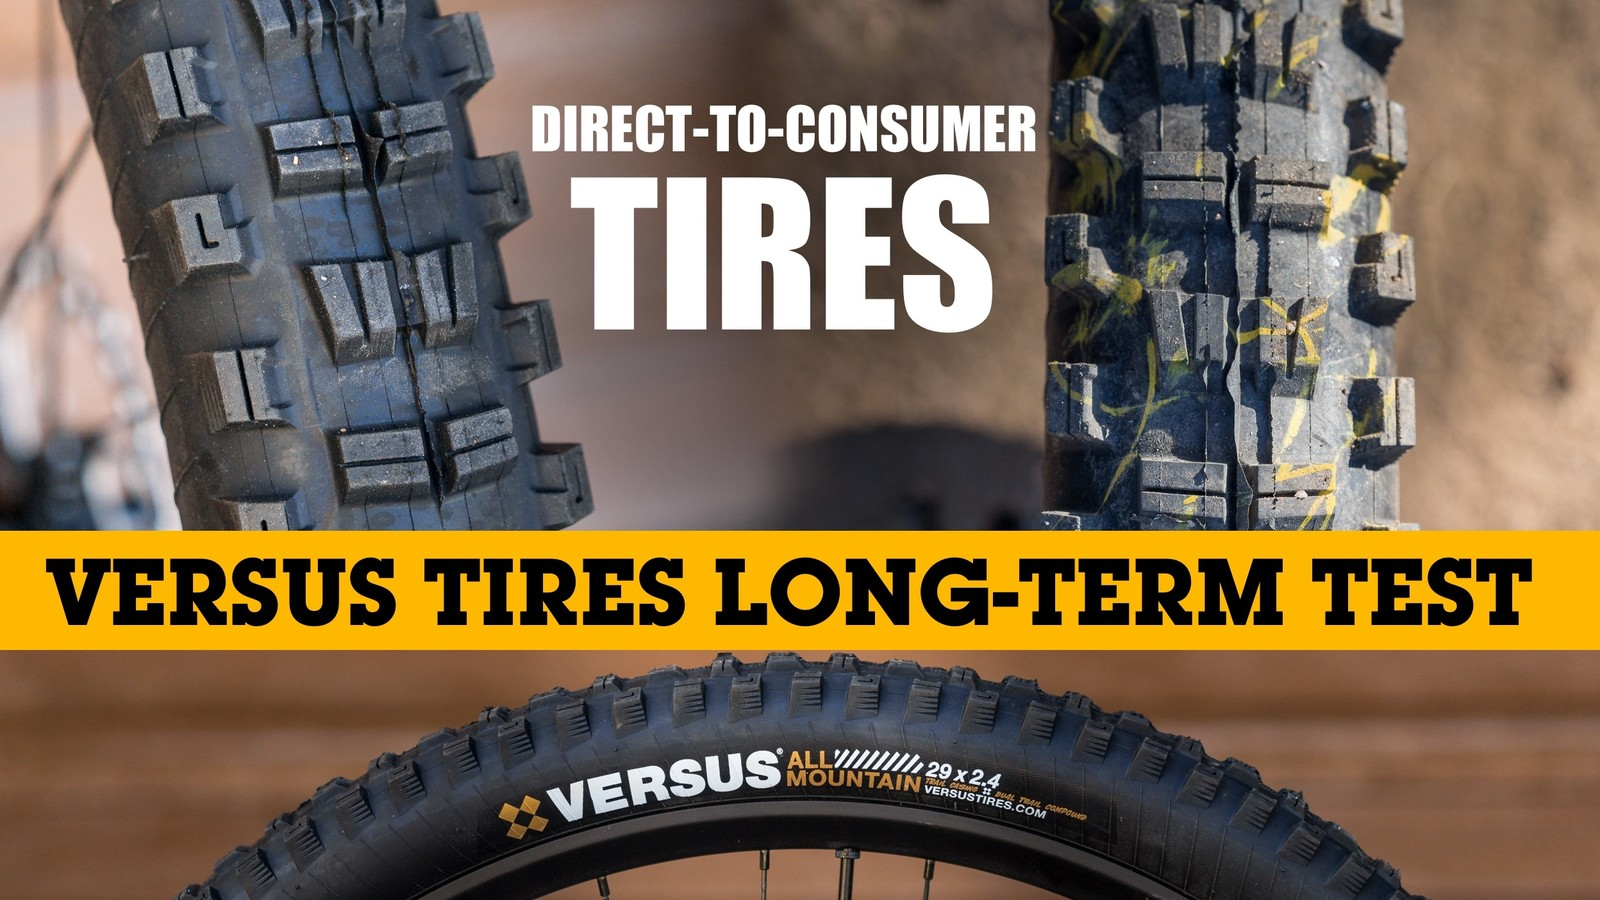 Direct-to-Consumer Tires: Versus Mountain Bike Tires Long-Term Tested